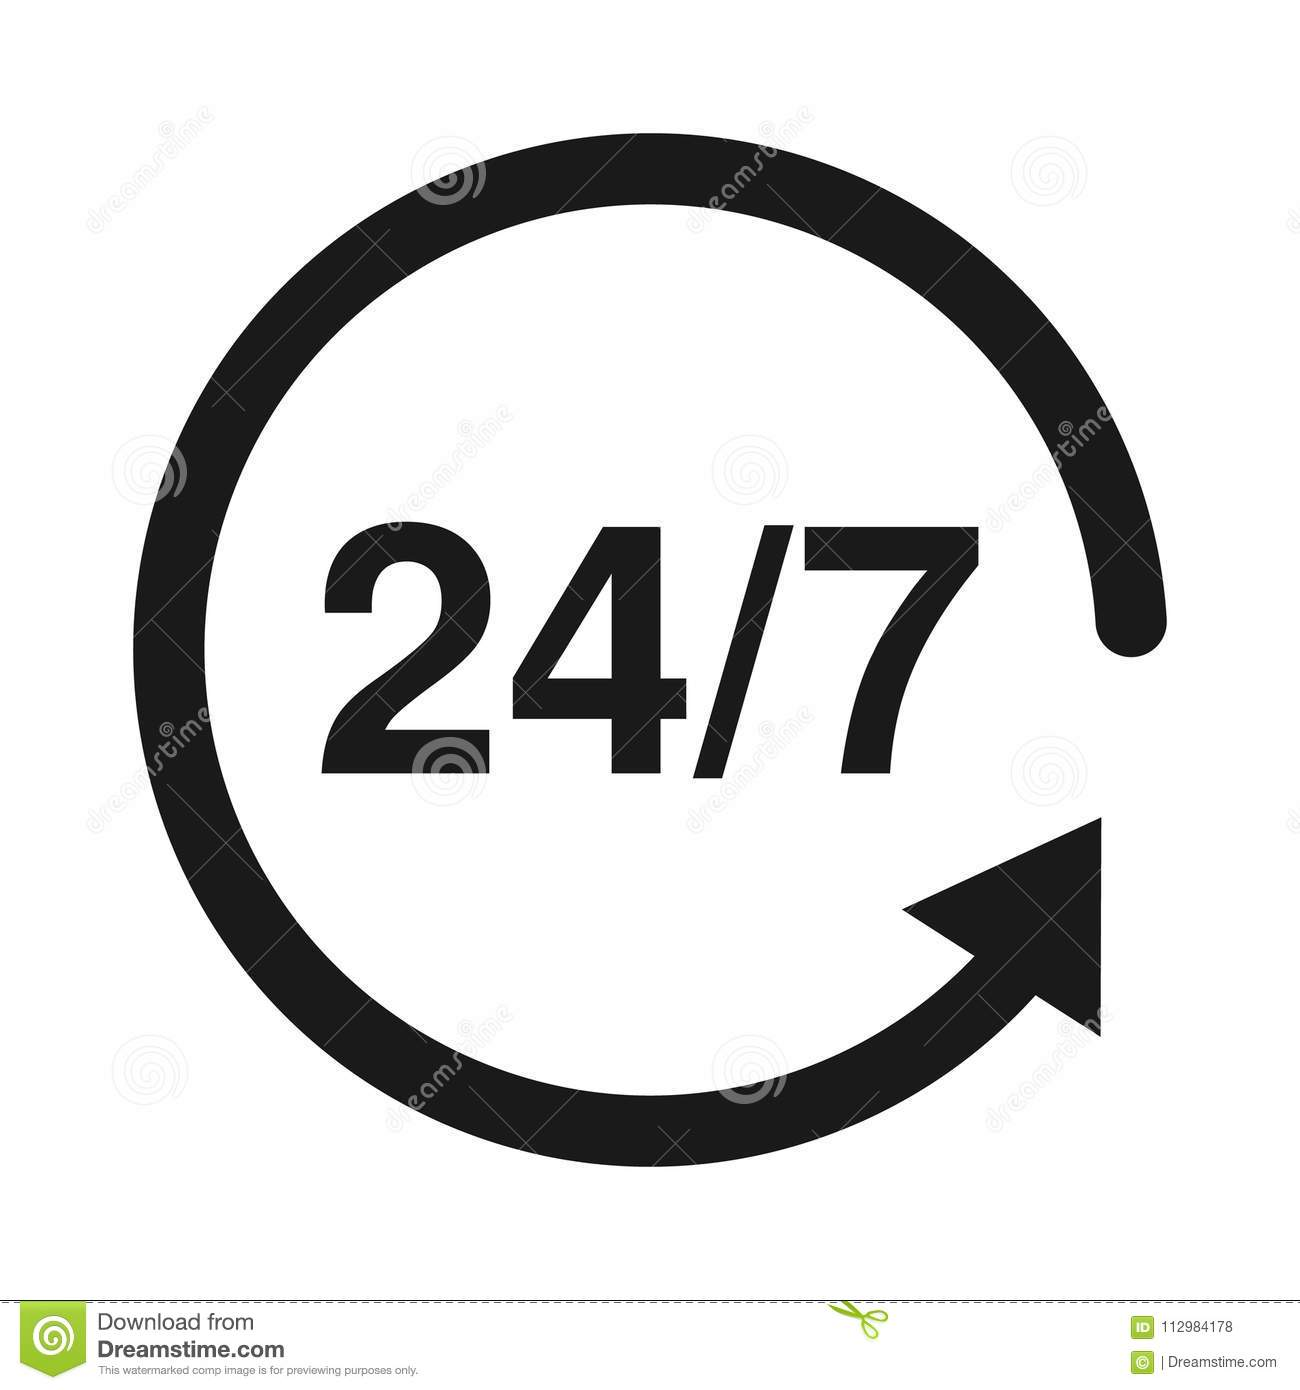 24 7 Service open 24h hours a day and 7 days a week. Flat isolated vector illustration in black.